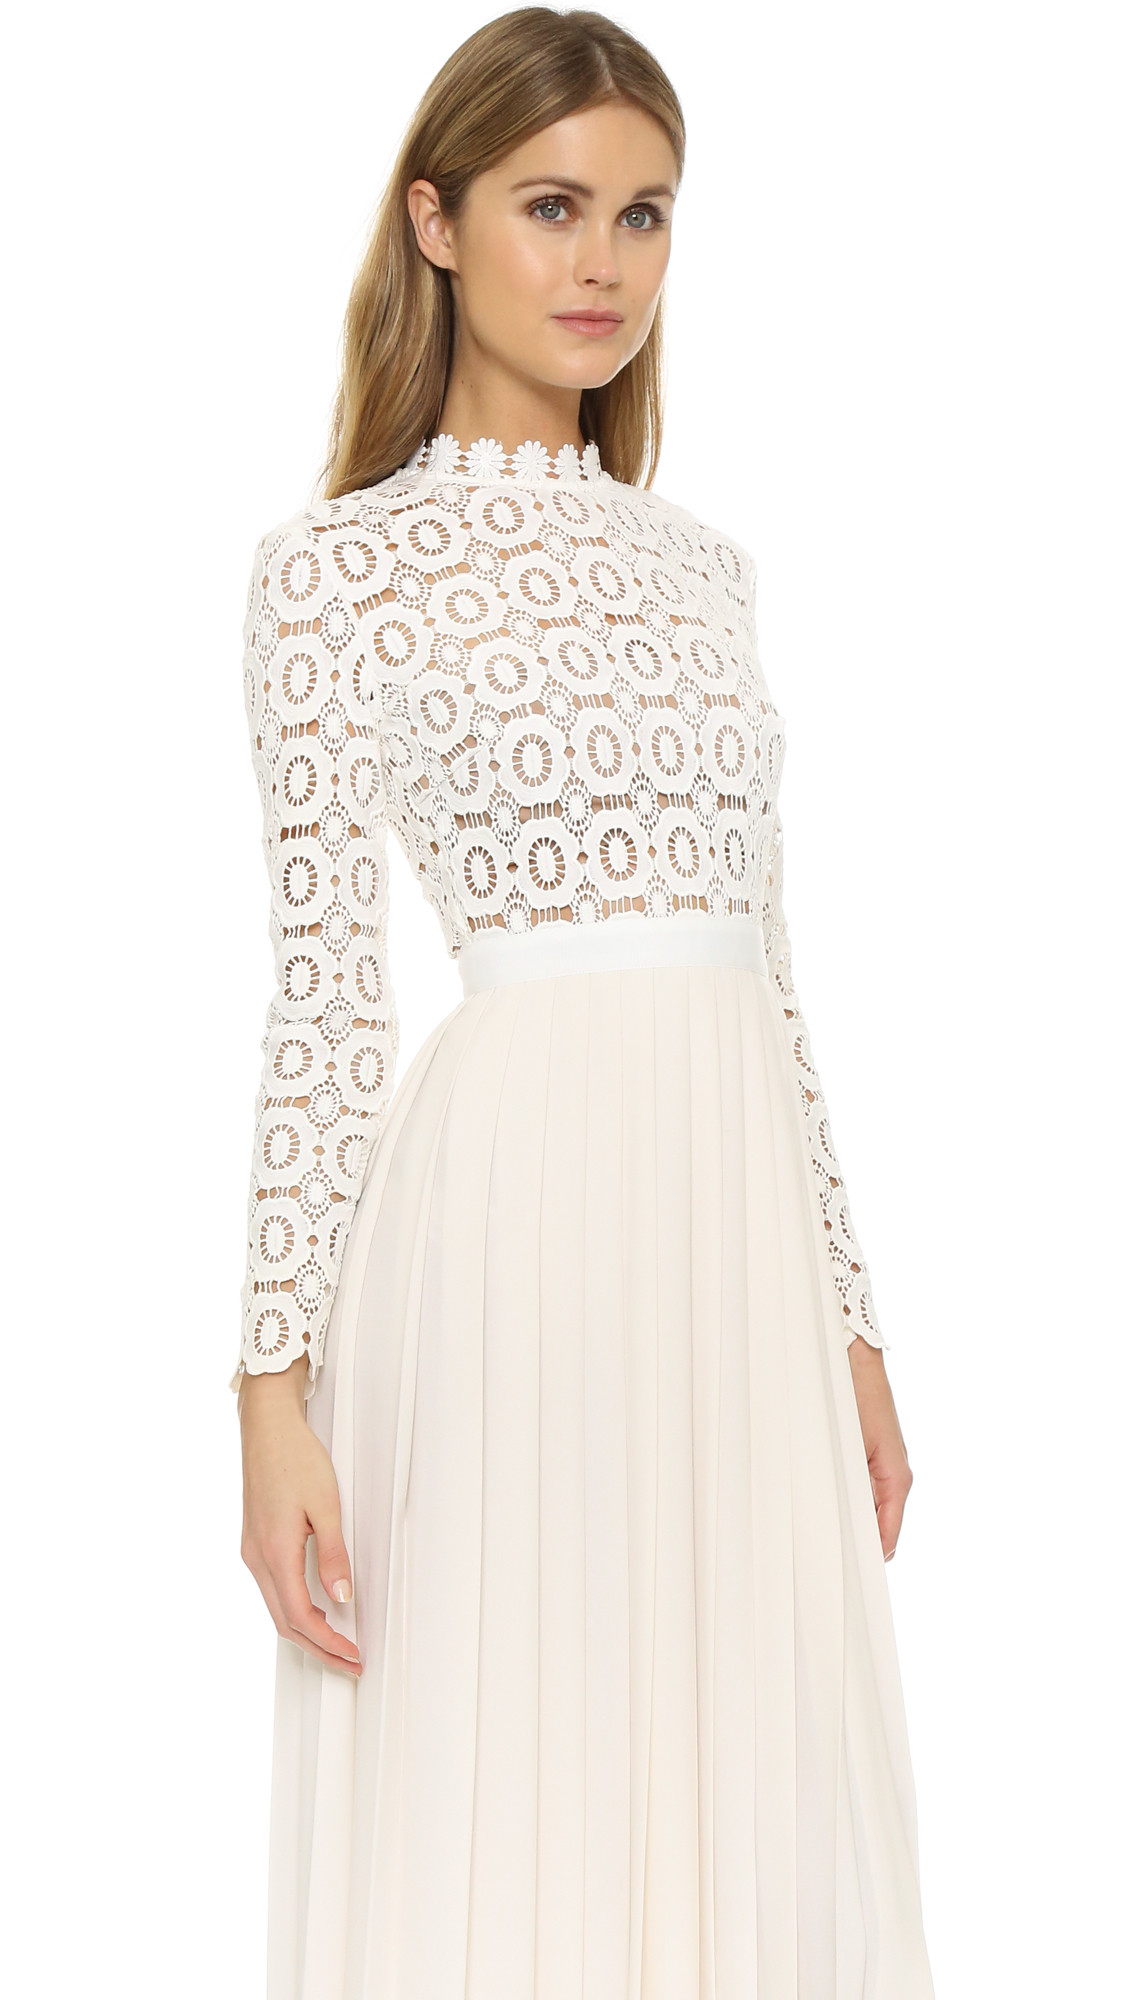 Crochet Dresses Awesome Self Portrait Pleated Crochet Crepe Maxi Dress In Natural Of Top 49 Pictures Crochet Dresses